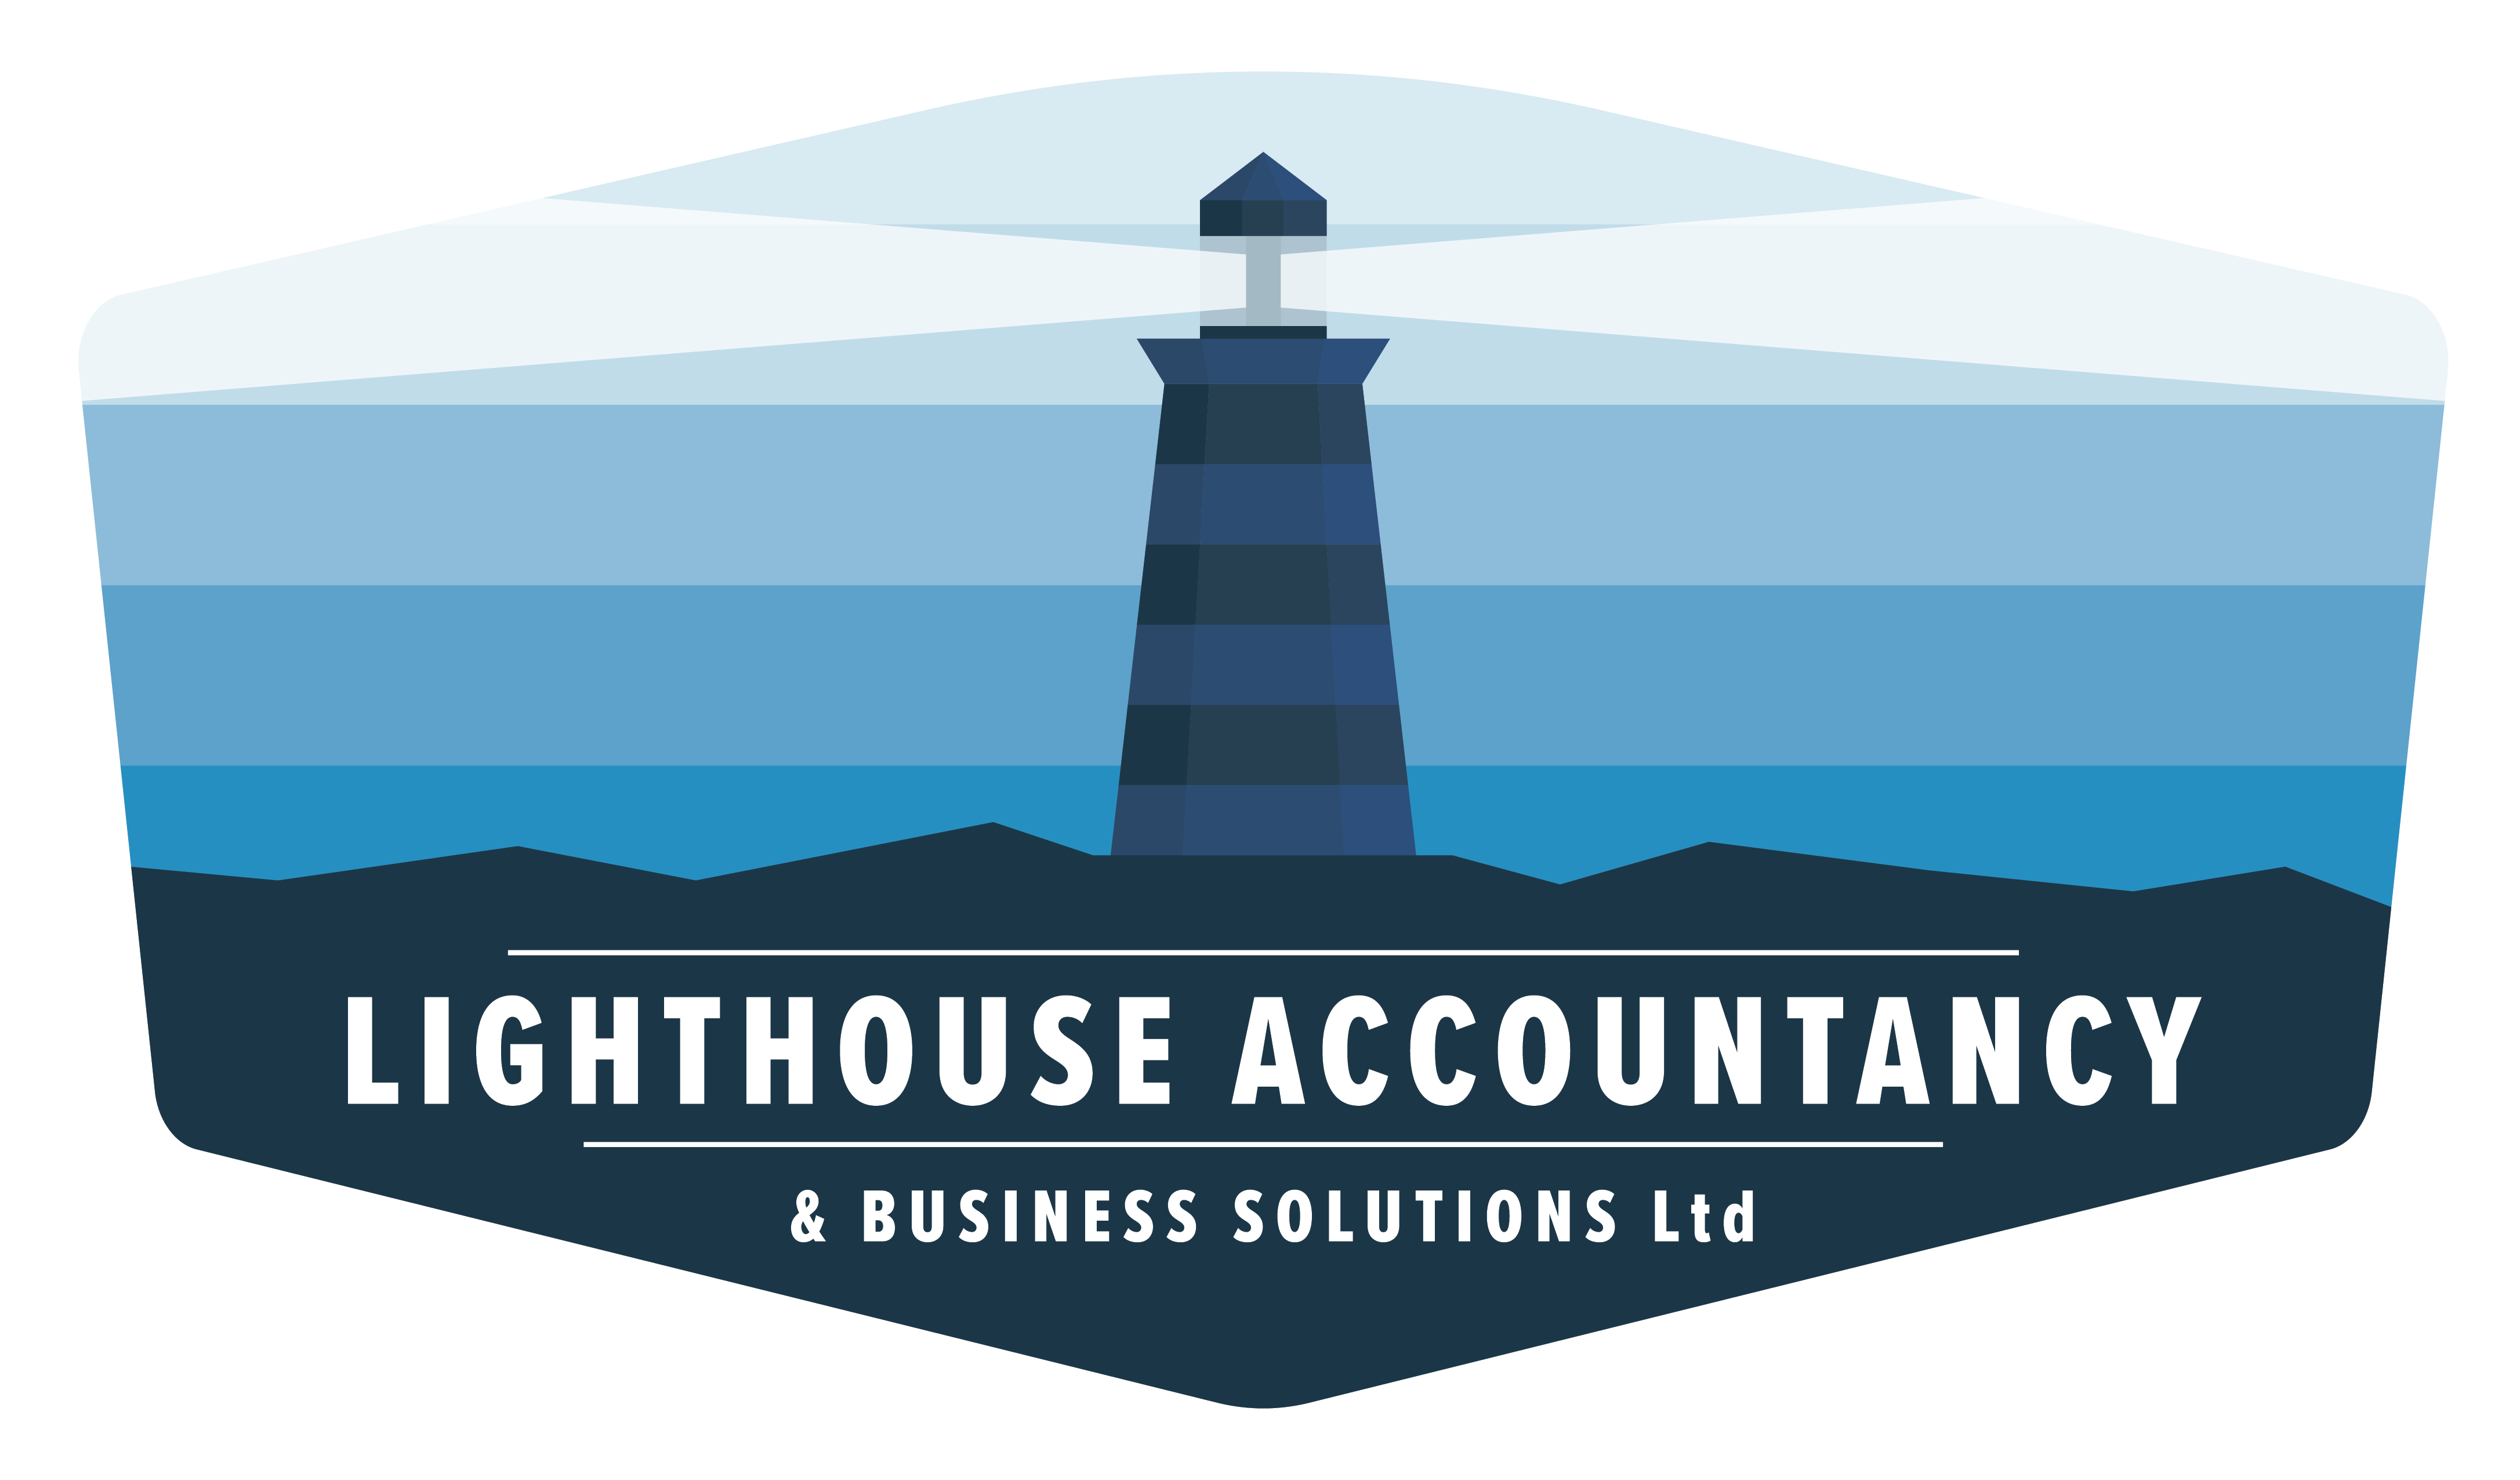 Lighthouse Accountancy